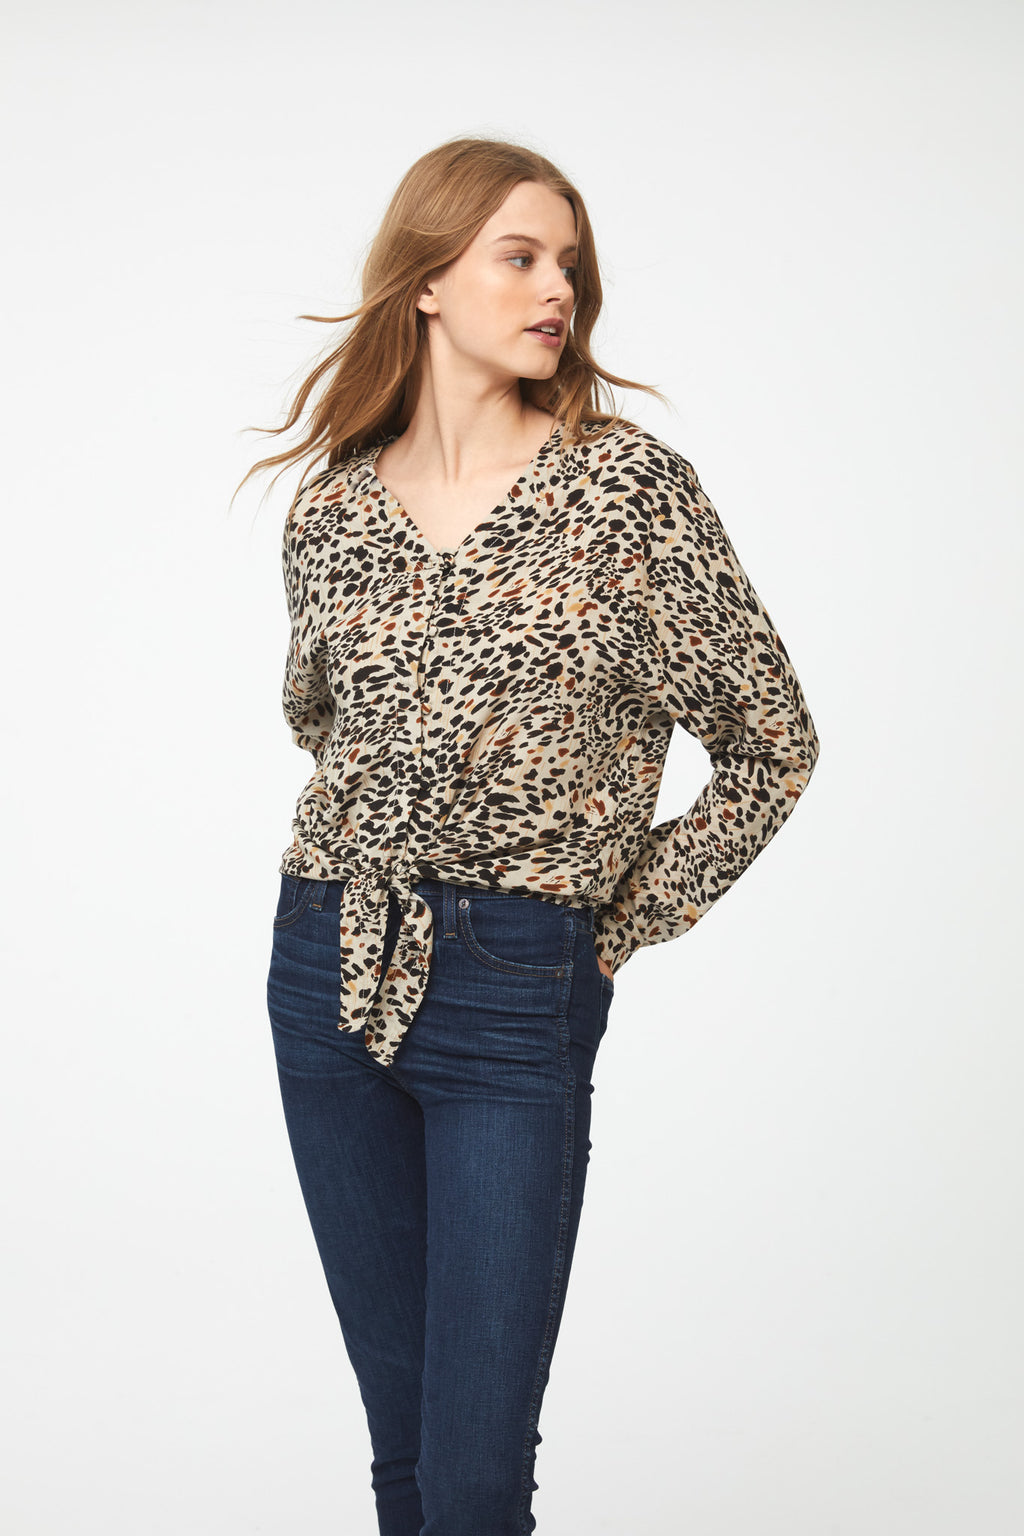 woman wearing a long sleeve, button front, V-neck animal print blouse with tie front at waist